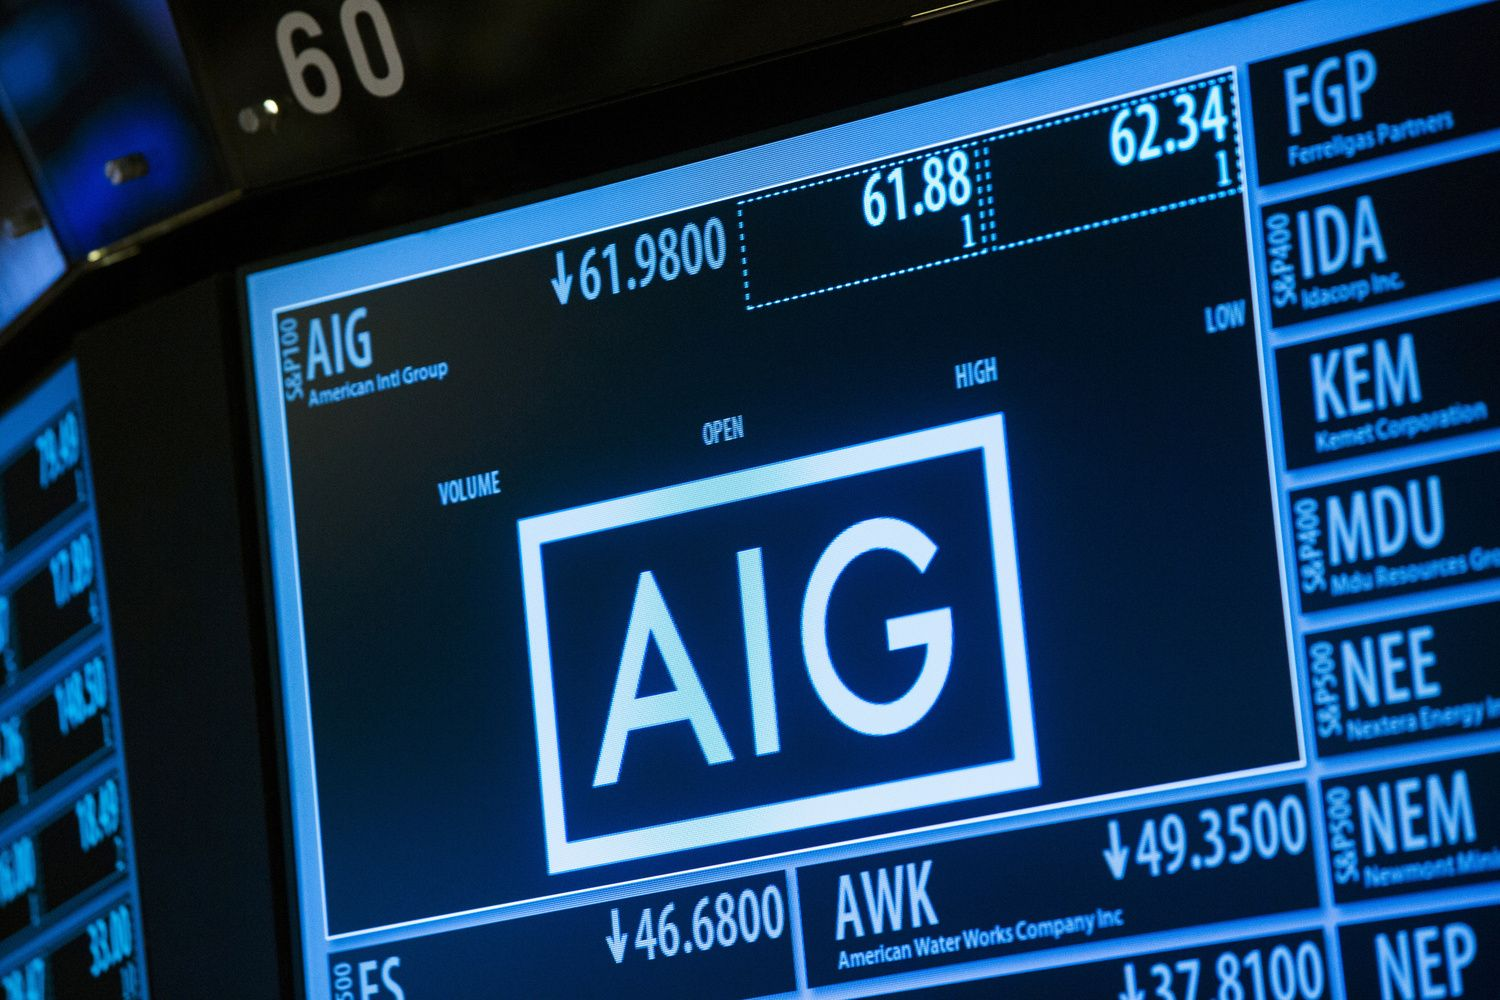 Everybody's been making money from AIG except its shareholders